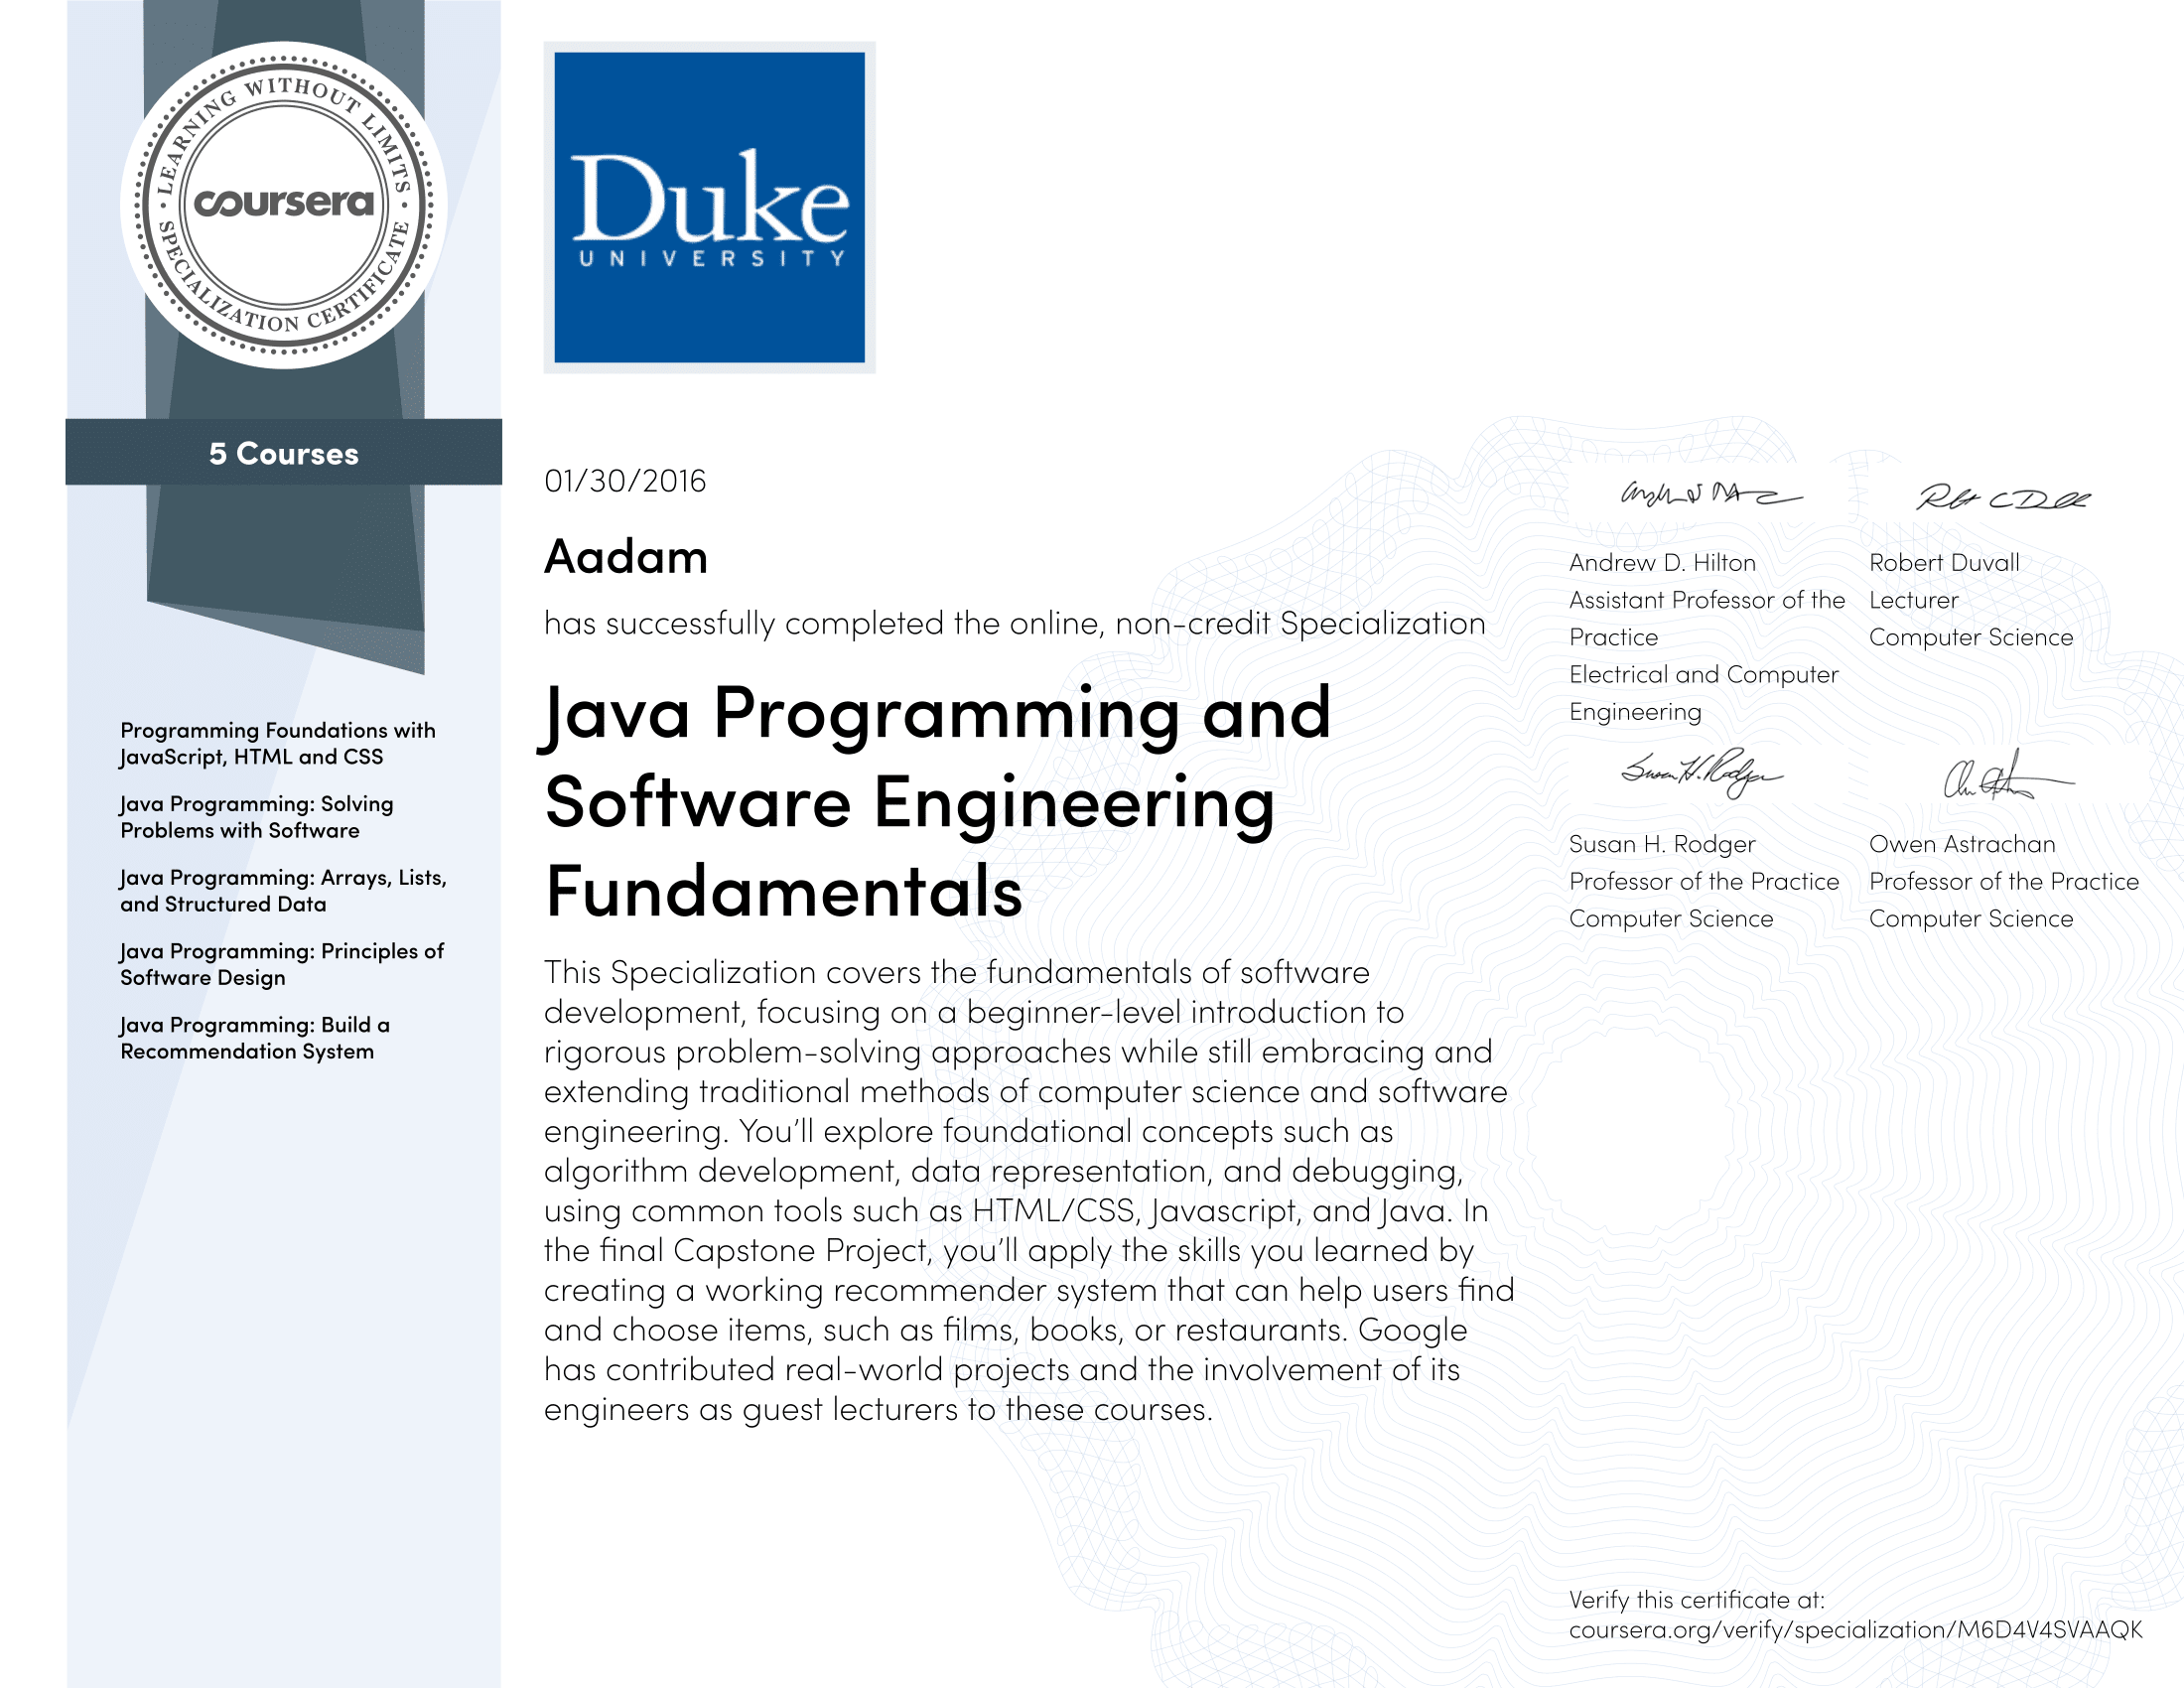 Java Programming and Software Engineering Fundamentals Specialization